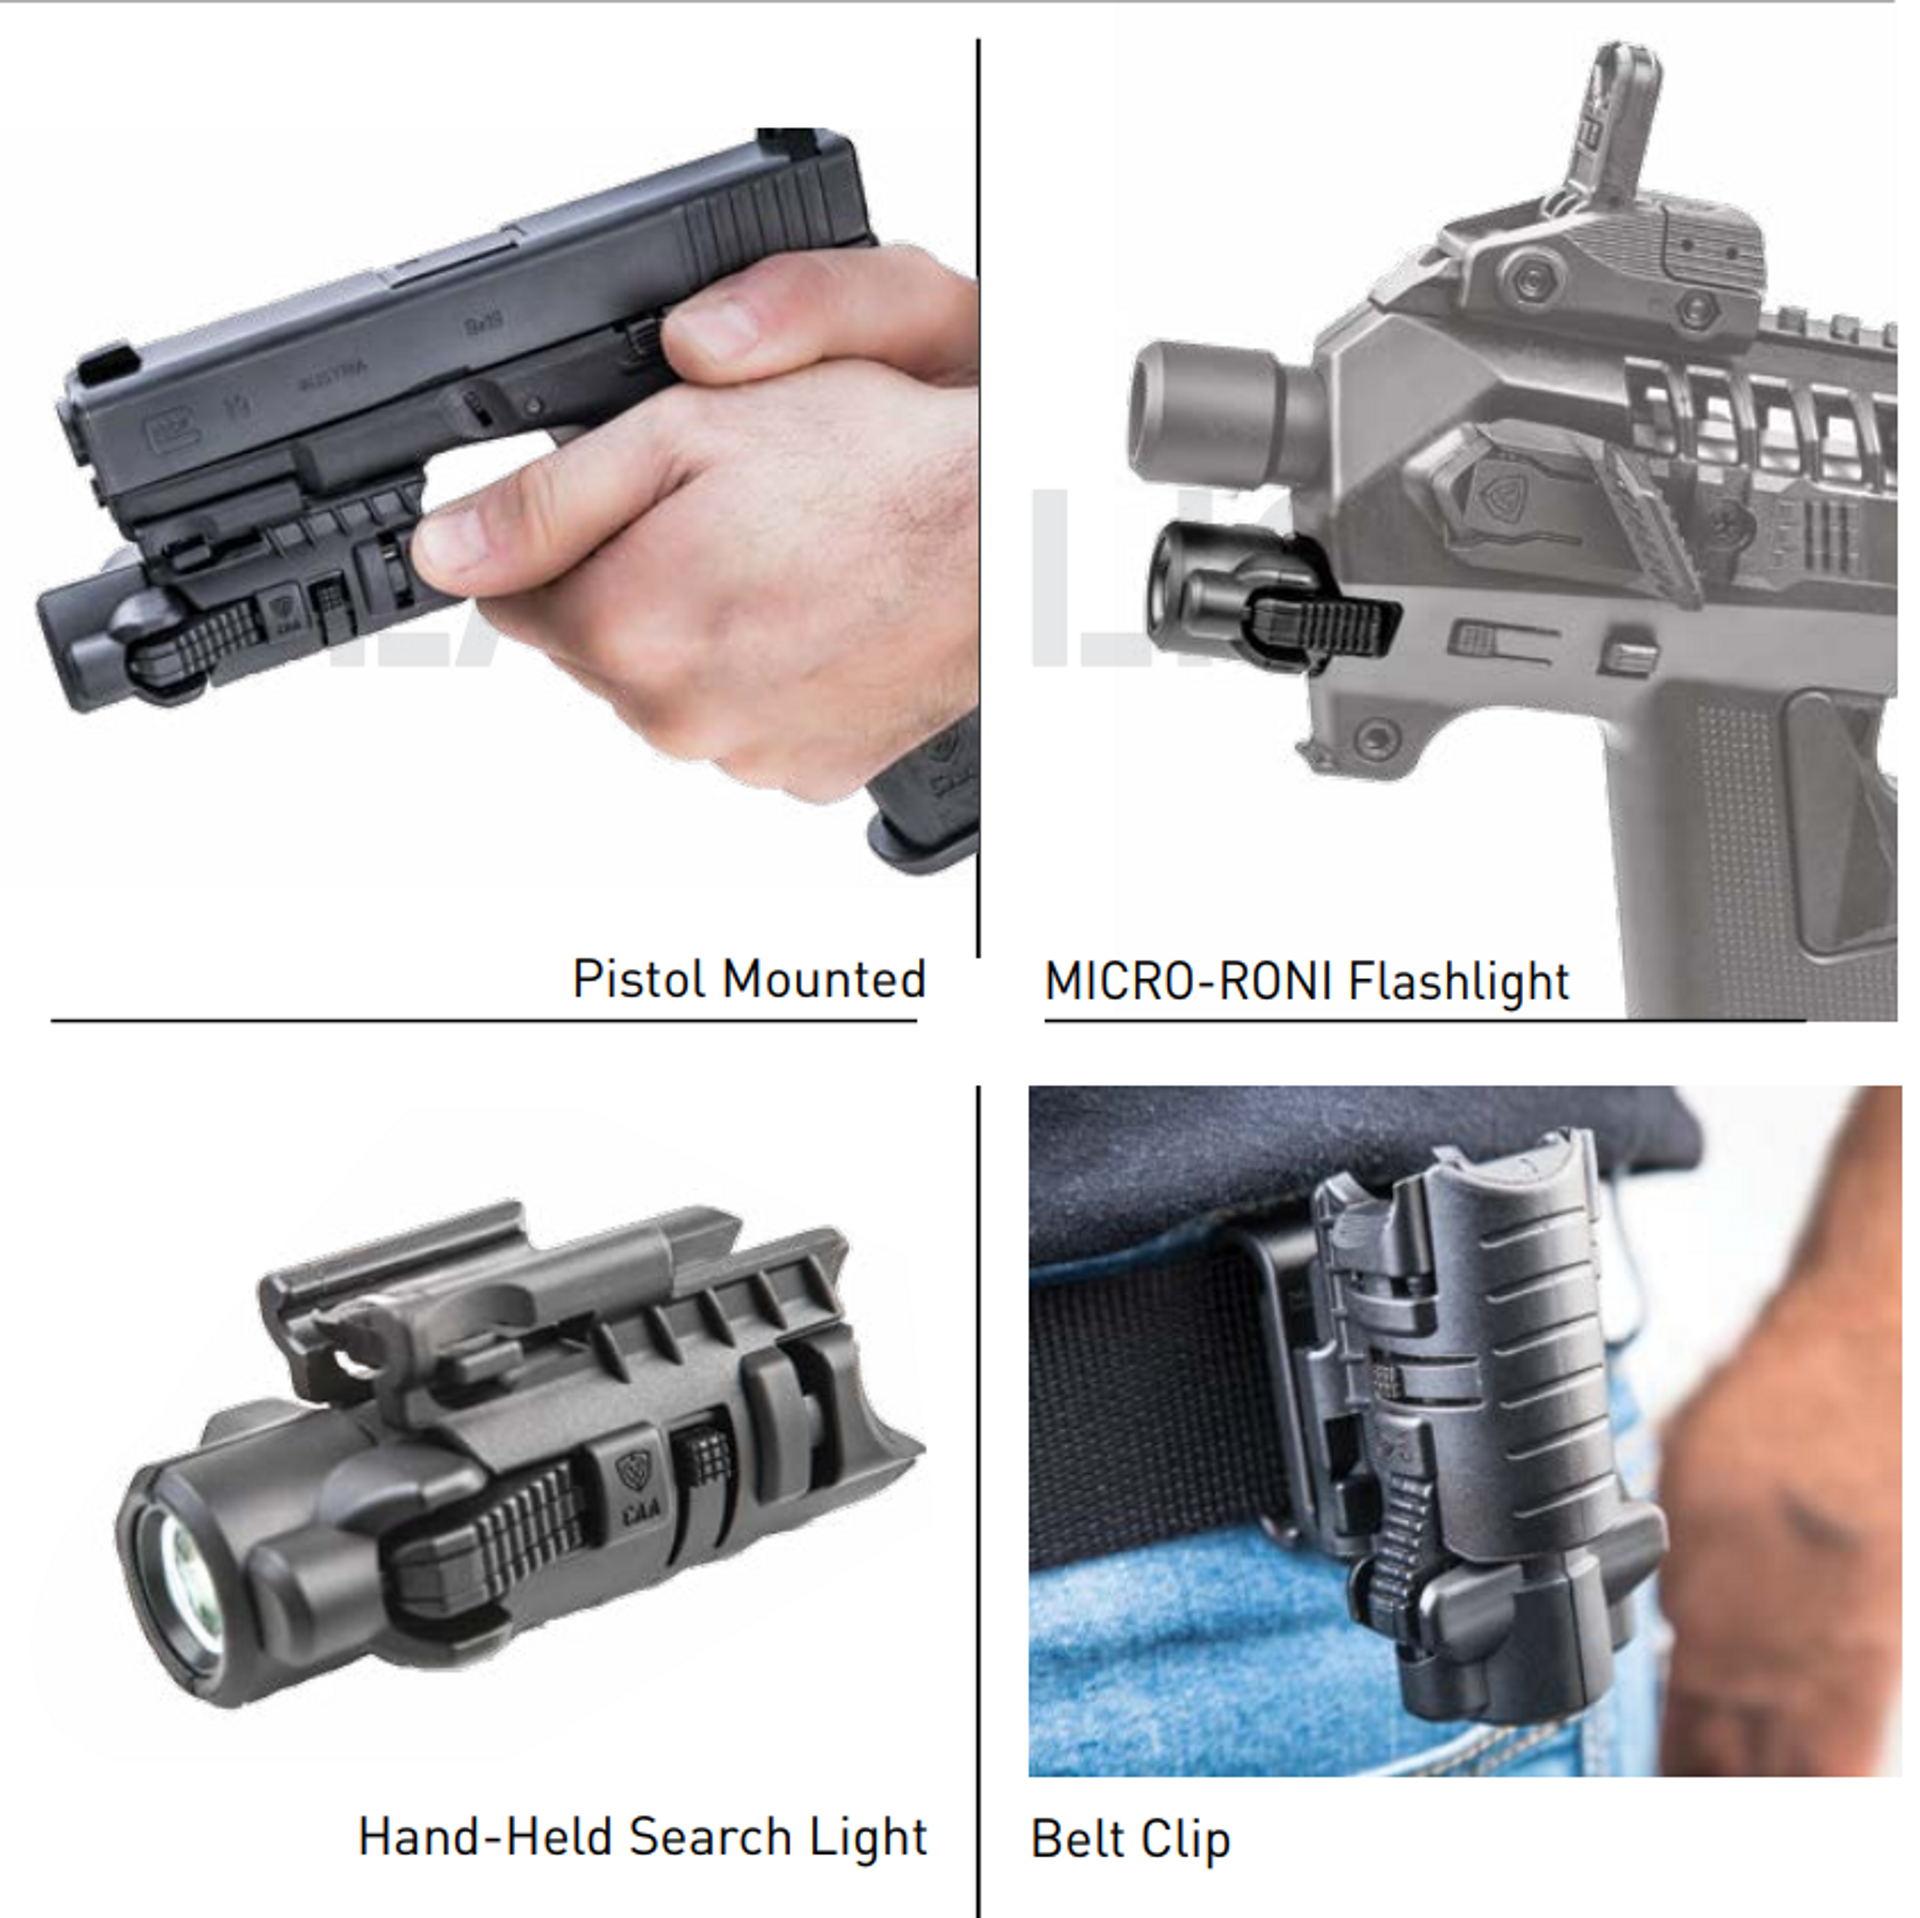 4 In 1 Adapter and Flashlight – Used as Handheld flashlight, connected to Picatinny lower rail, comes with a belt adapter and connects to the Micro Roni Gen 3 for Glock 17 and Micro Roni Gen 4.